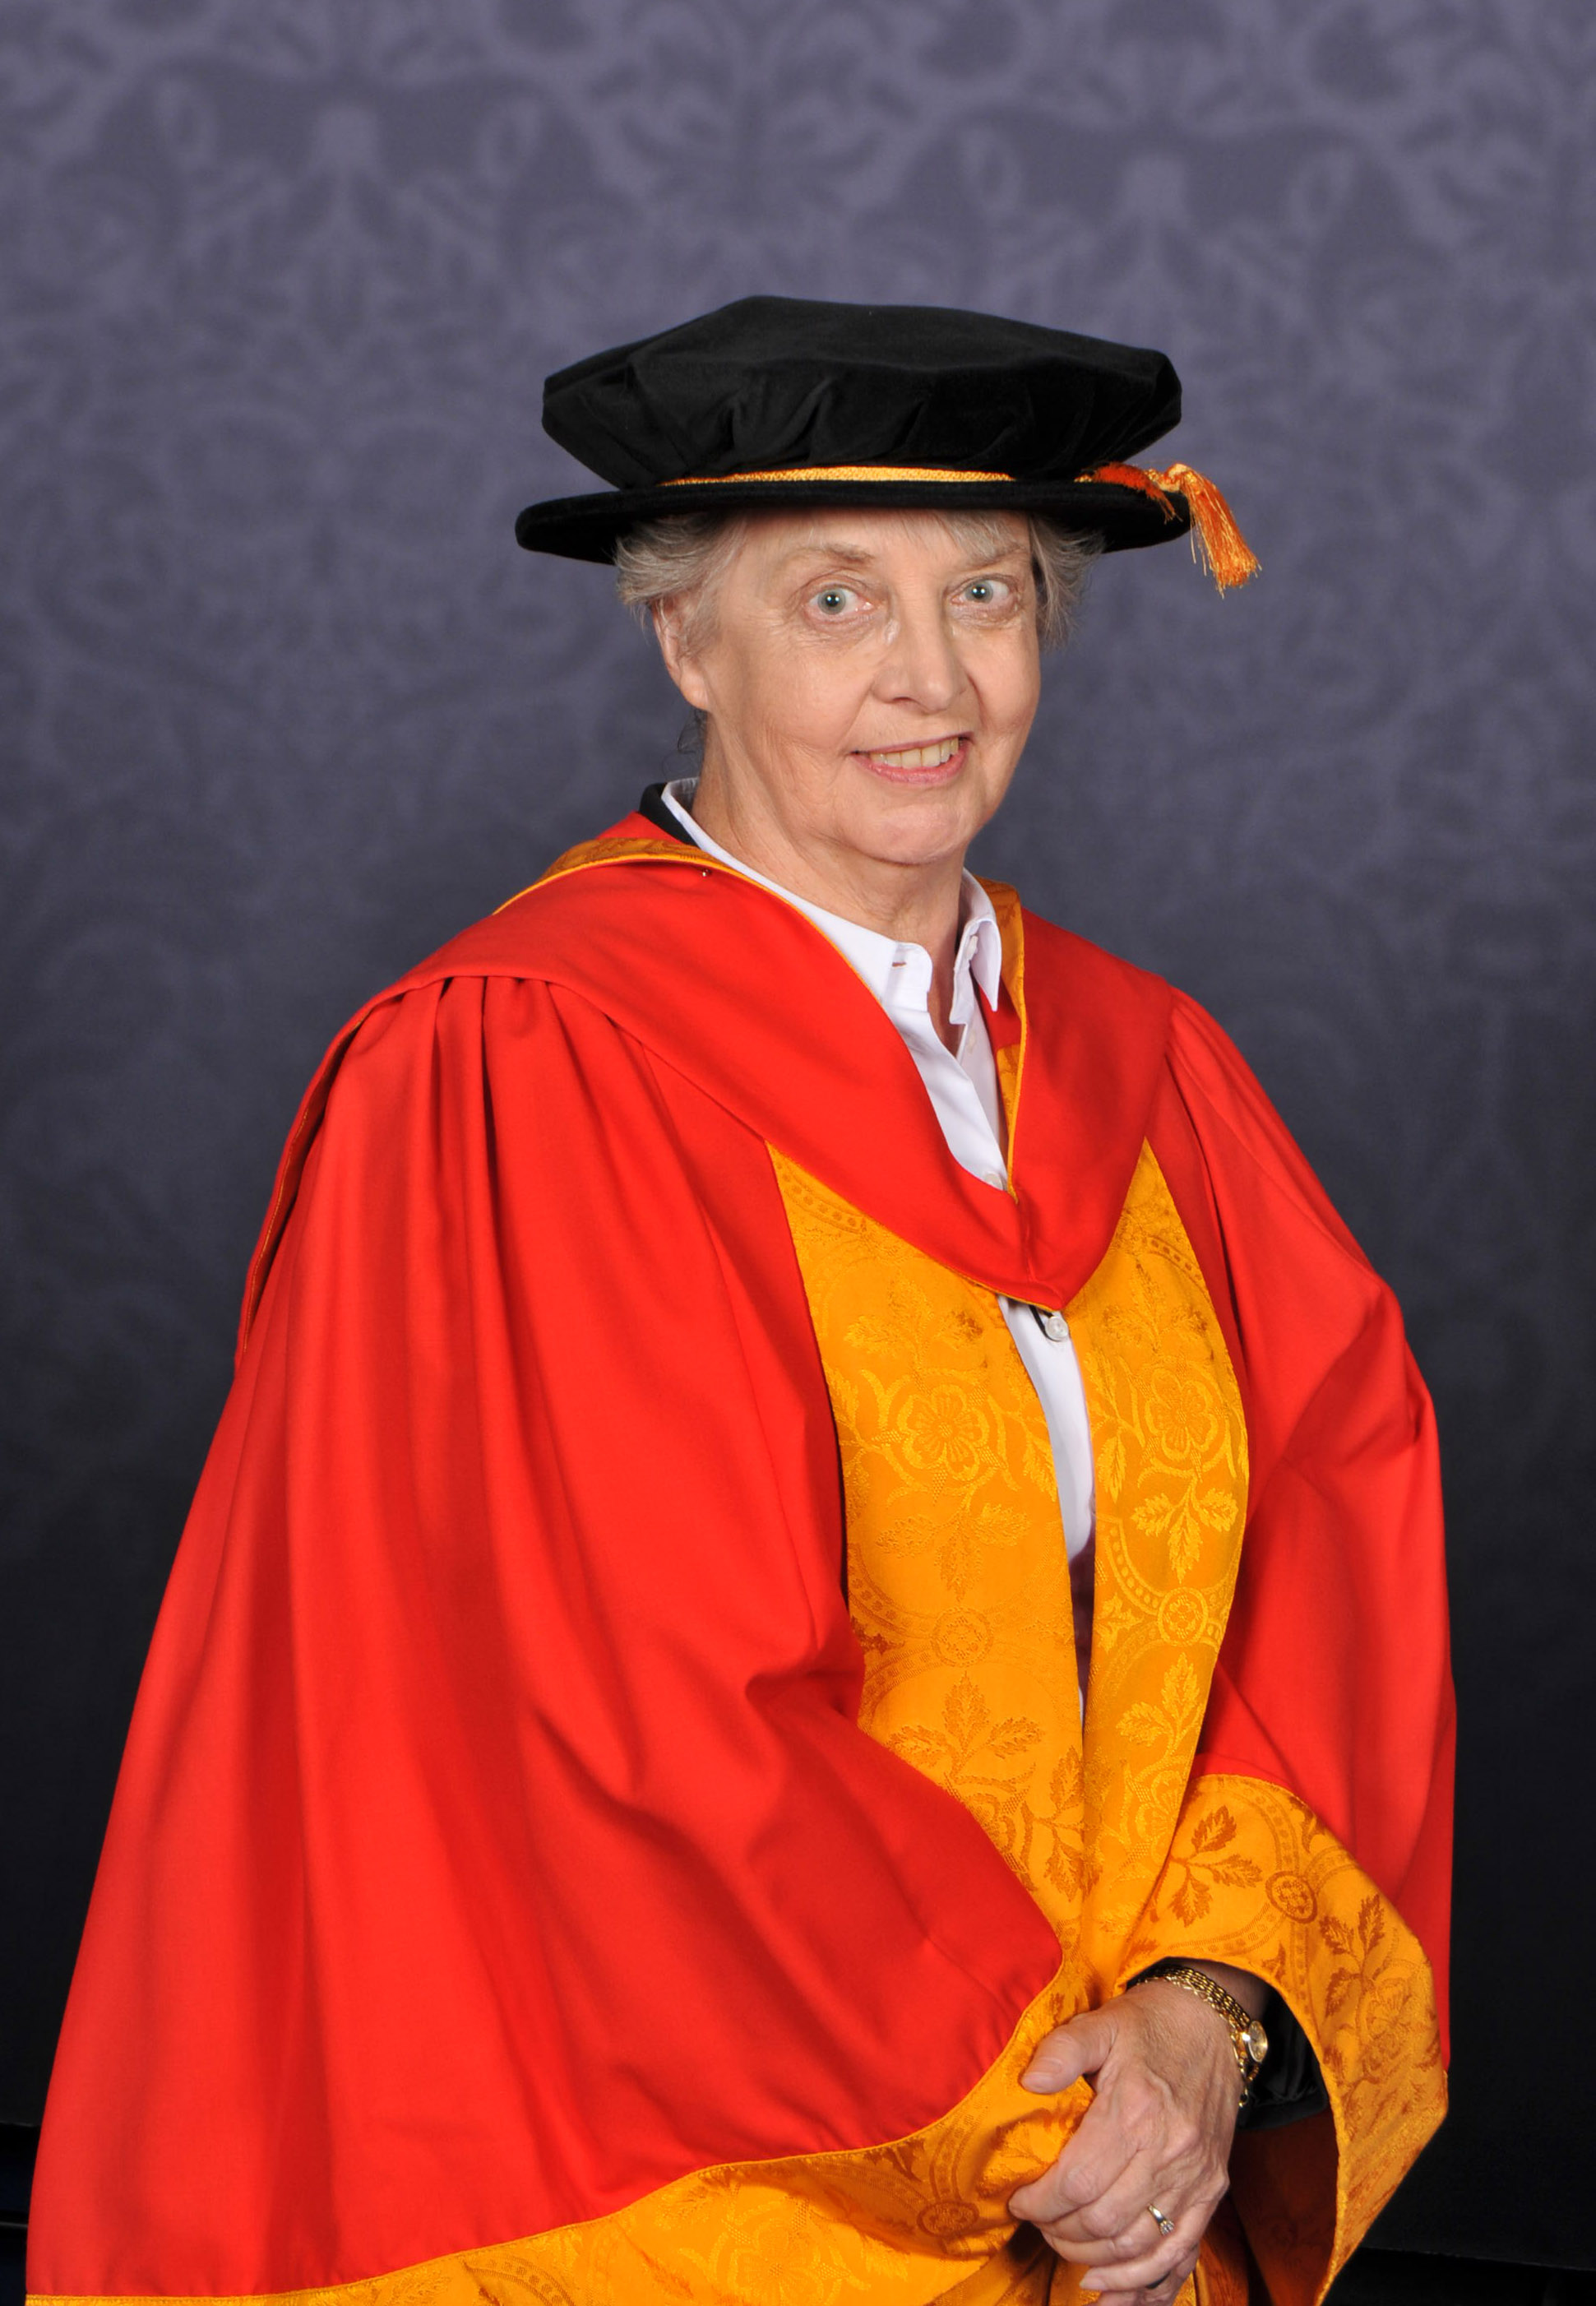 Honorary degree rewards engineering success